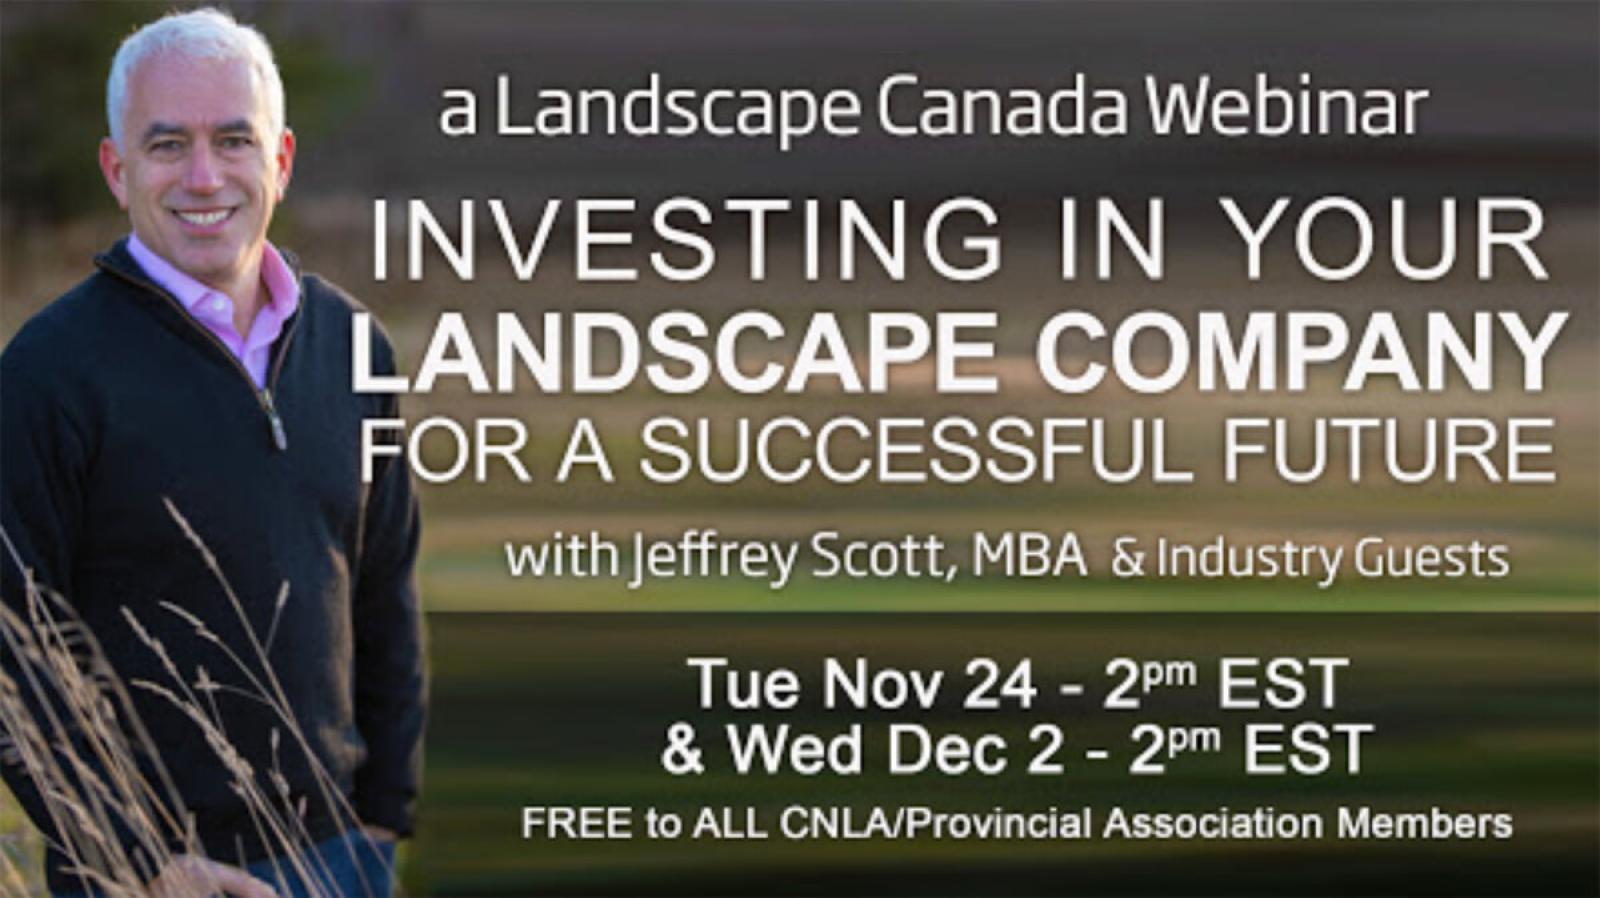 Investing in your landscape company webinar